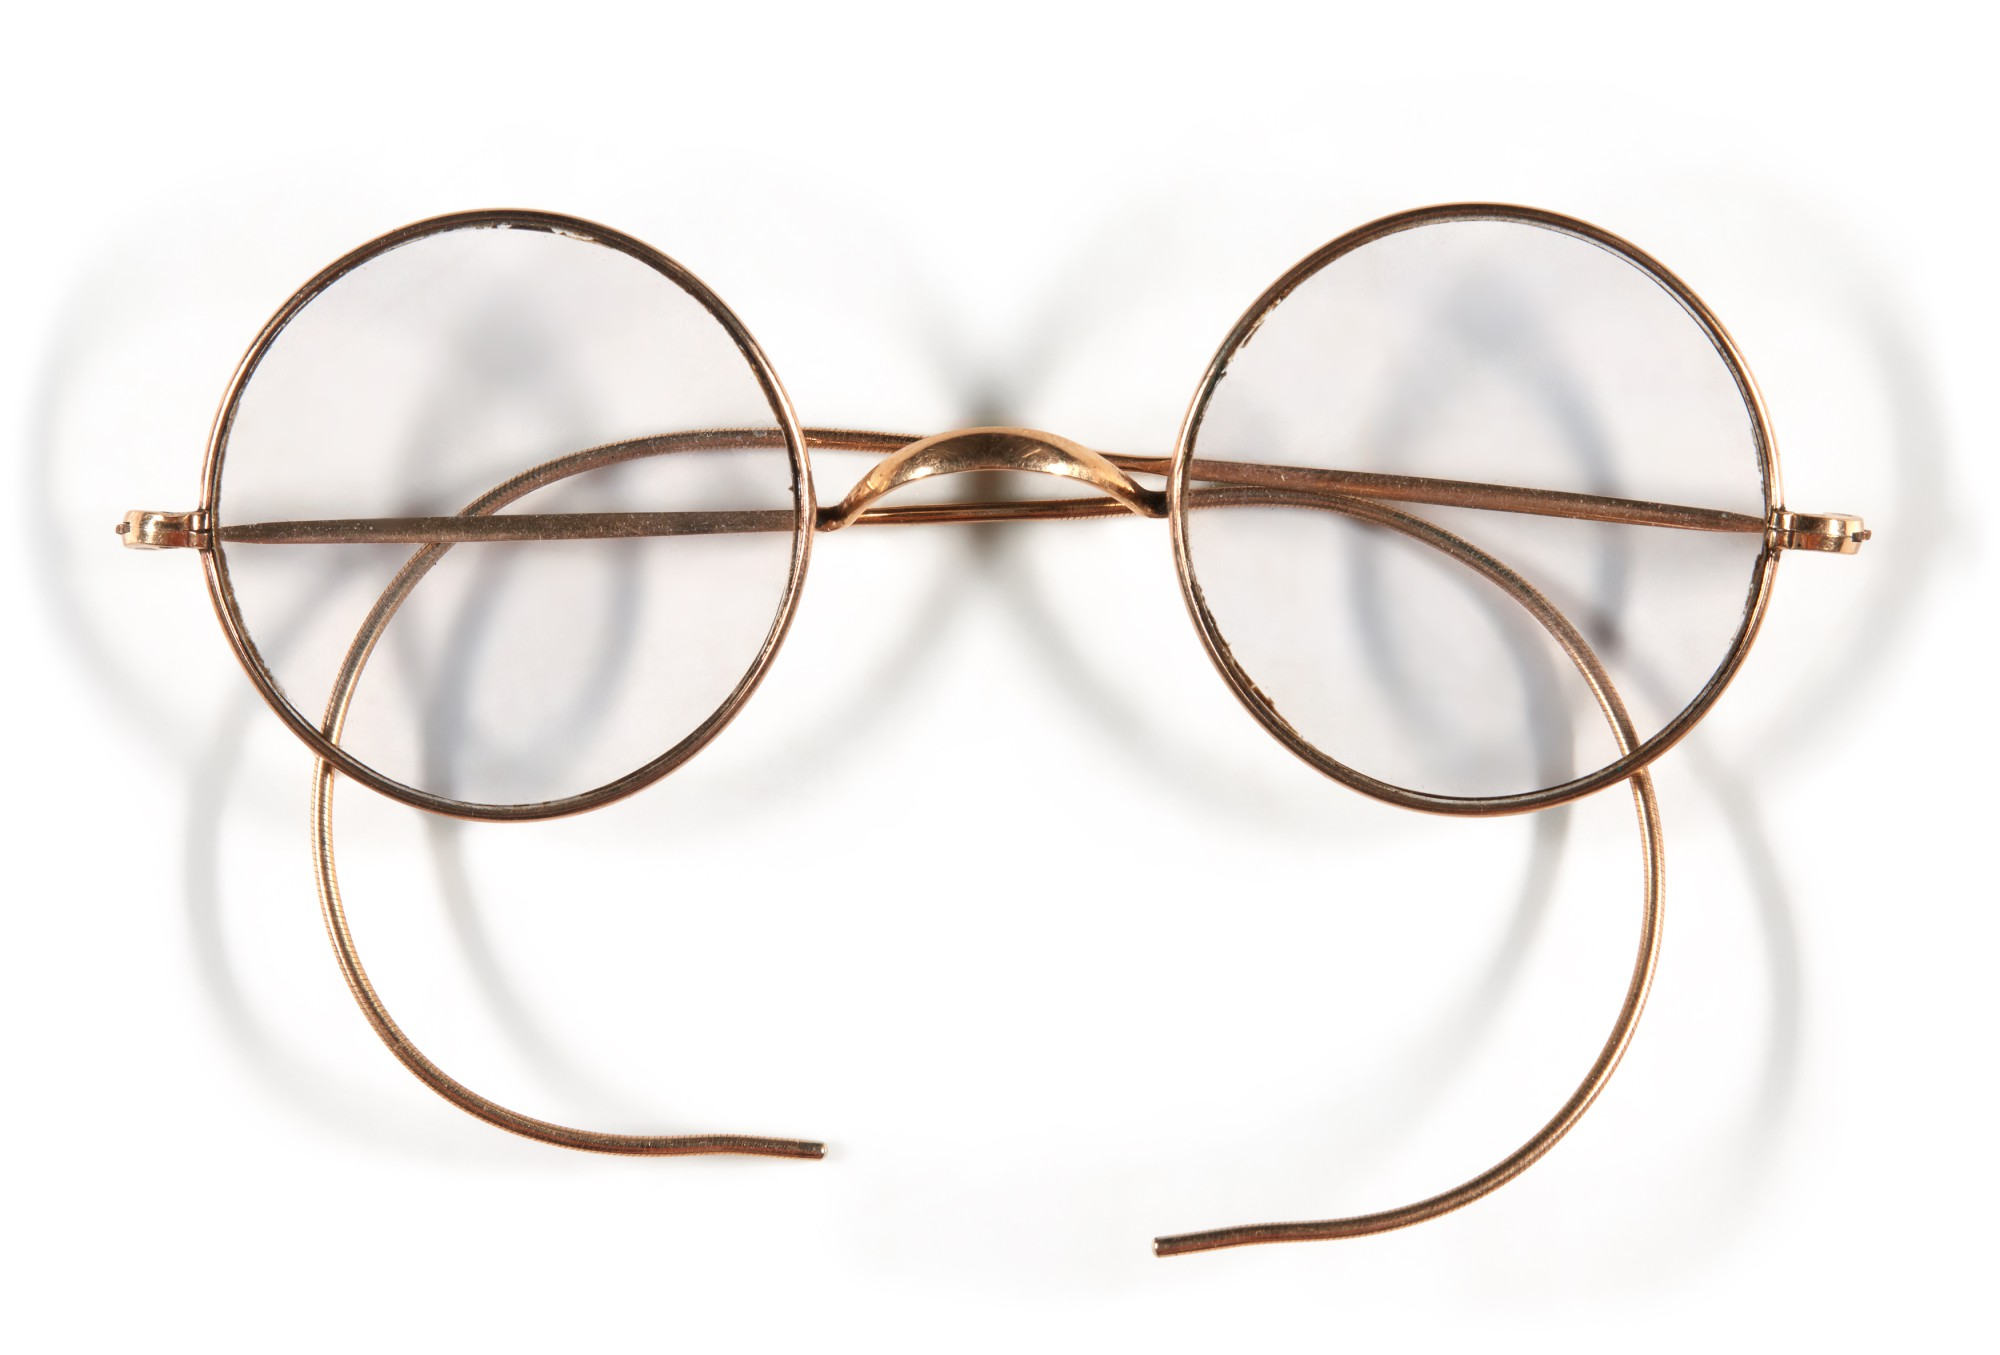 John Lennon Pair Of Round Windsor Spectacles The Beatles2020 Sotheby S